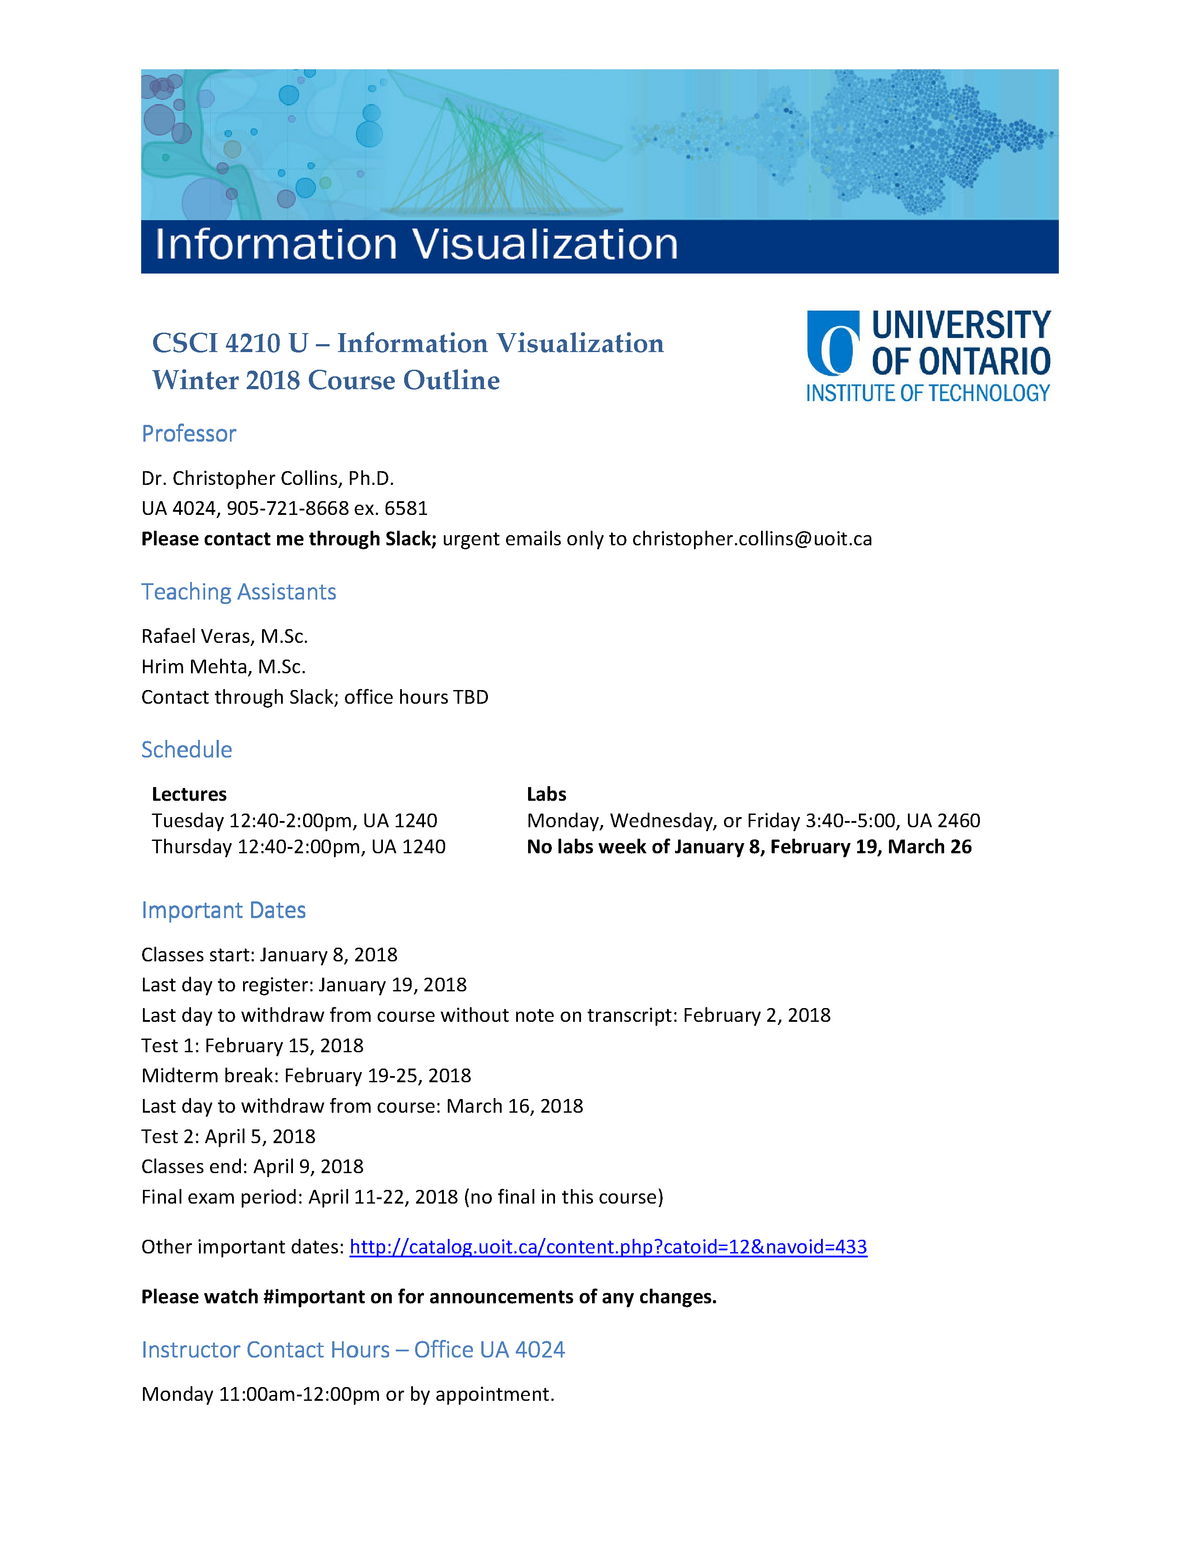 Syllabus - The course outline for information visualization